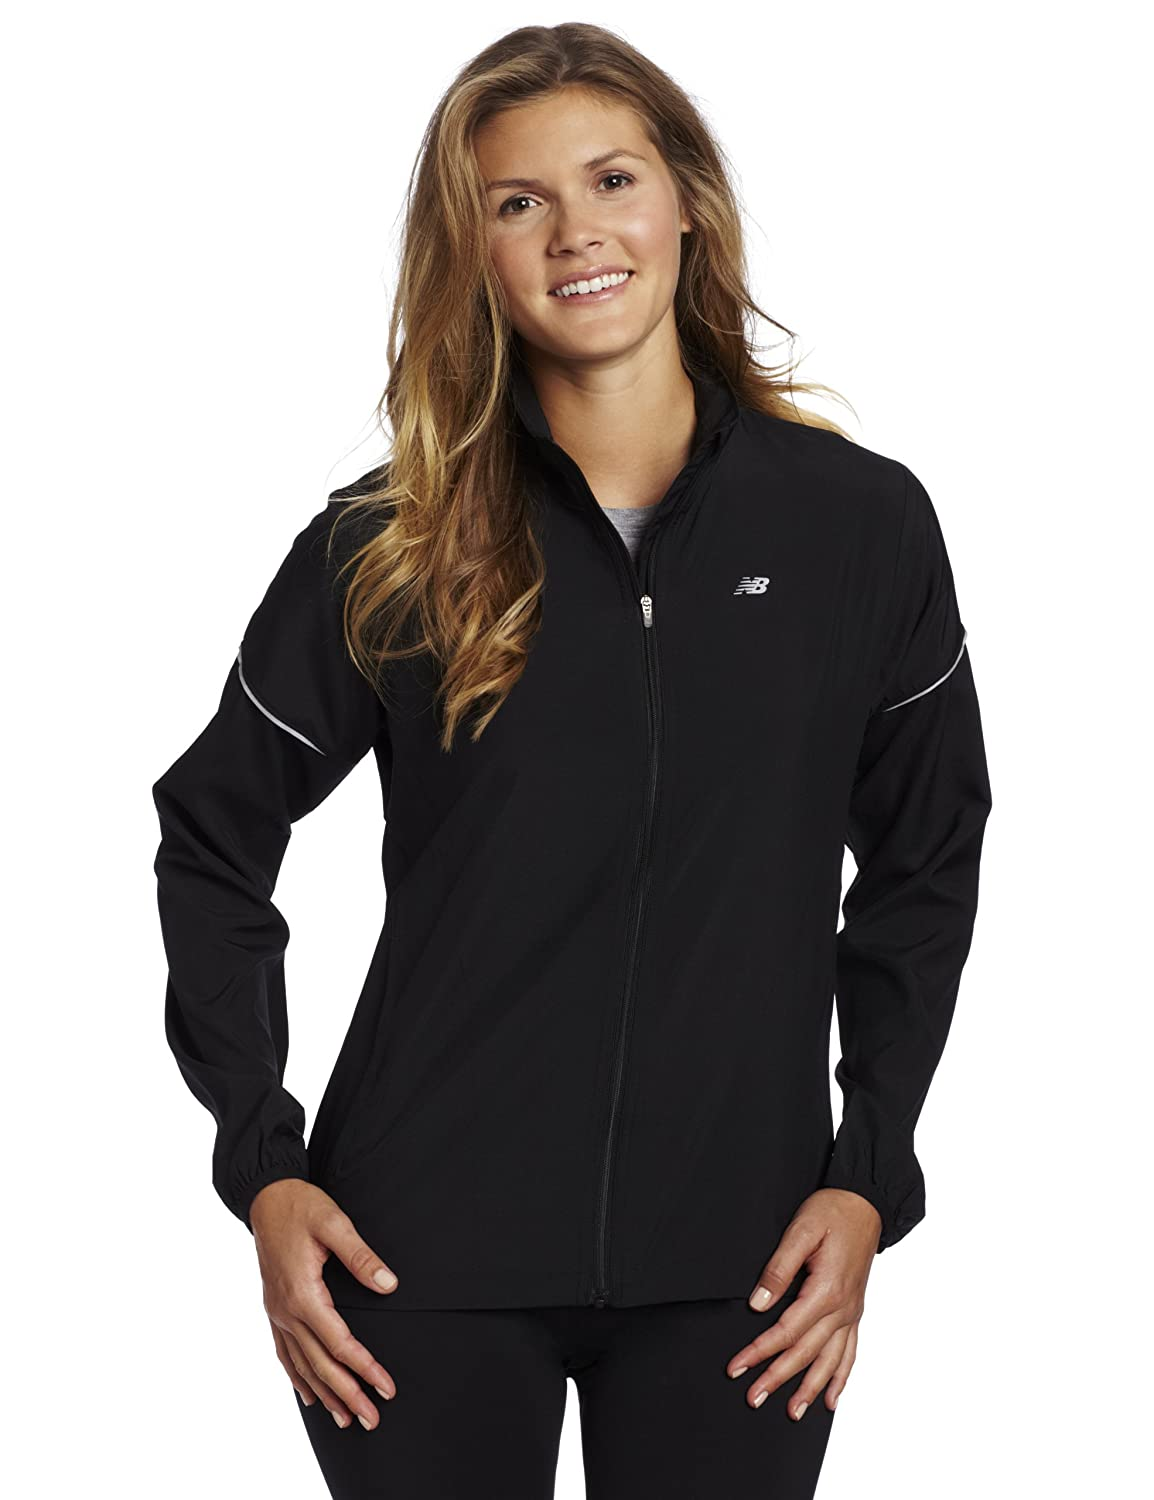 New Balance Women's Sequence Jacket